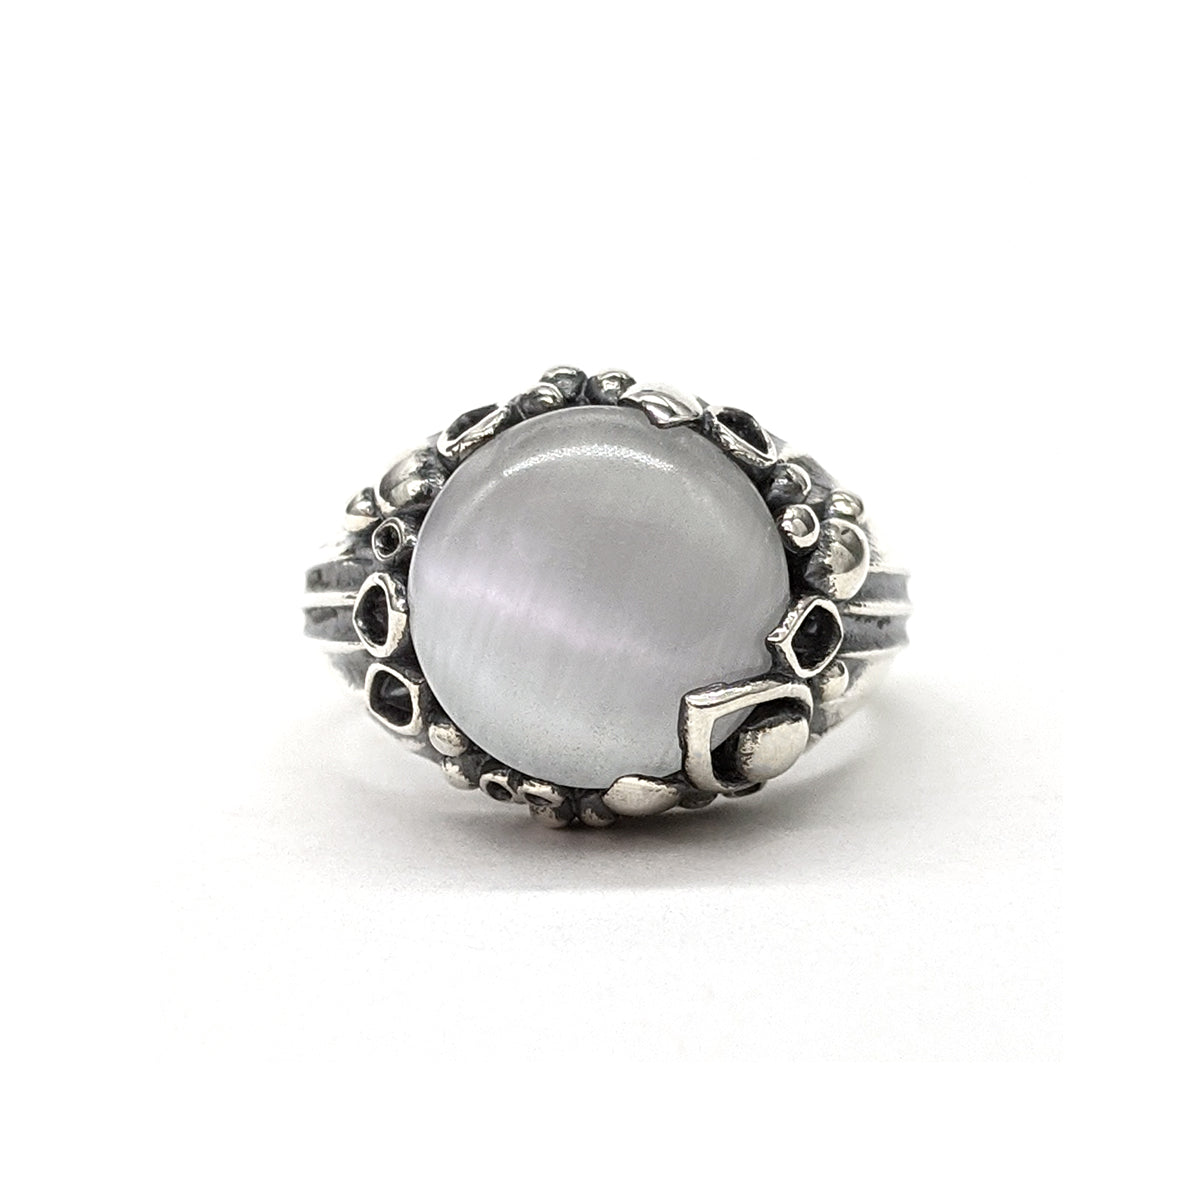 Sterling silver ring with an oxidized finished in the recesses. This statement cocktail ring features a white glass cabochon gemstone in the center.